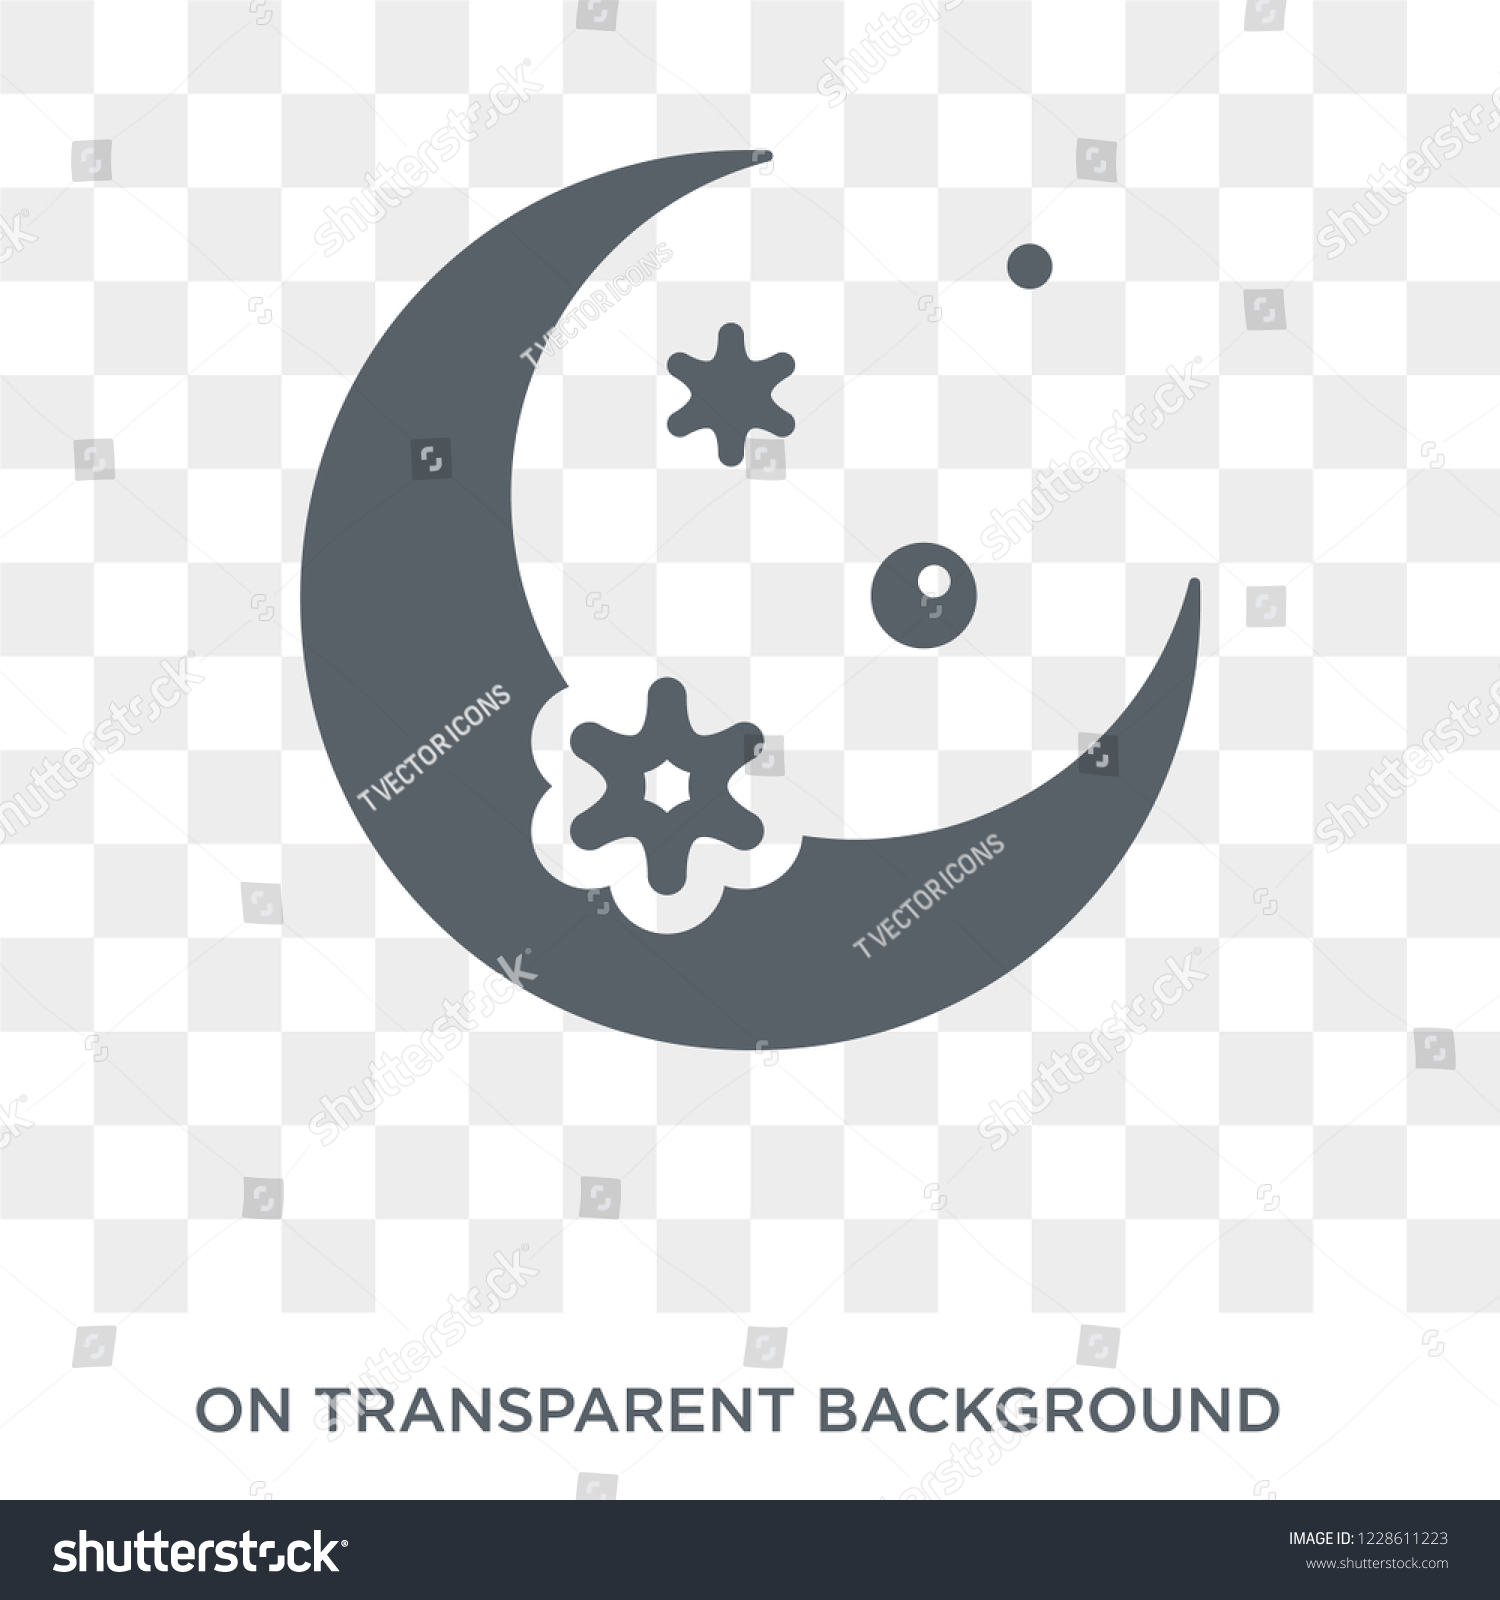 crescent moon icon crescent moon design stock vector royalty free 1228611223 shutterstock